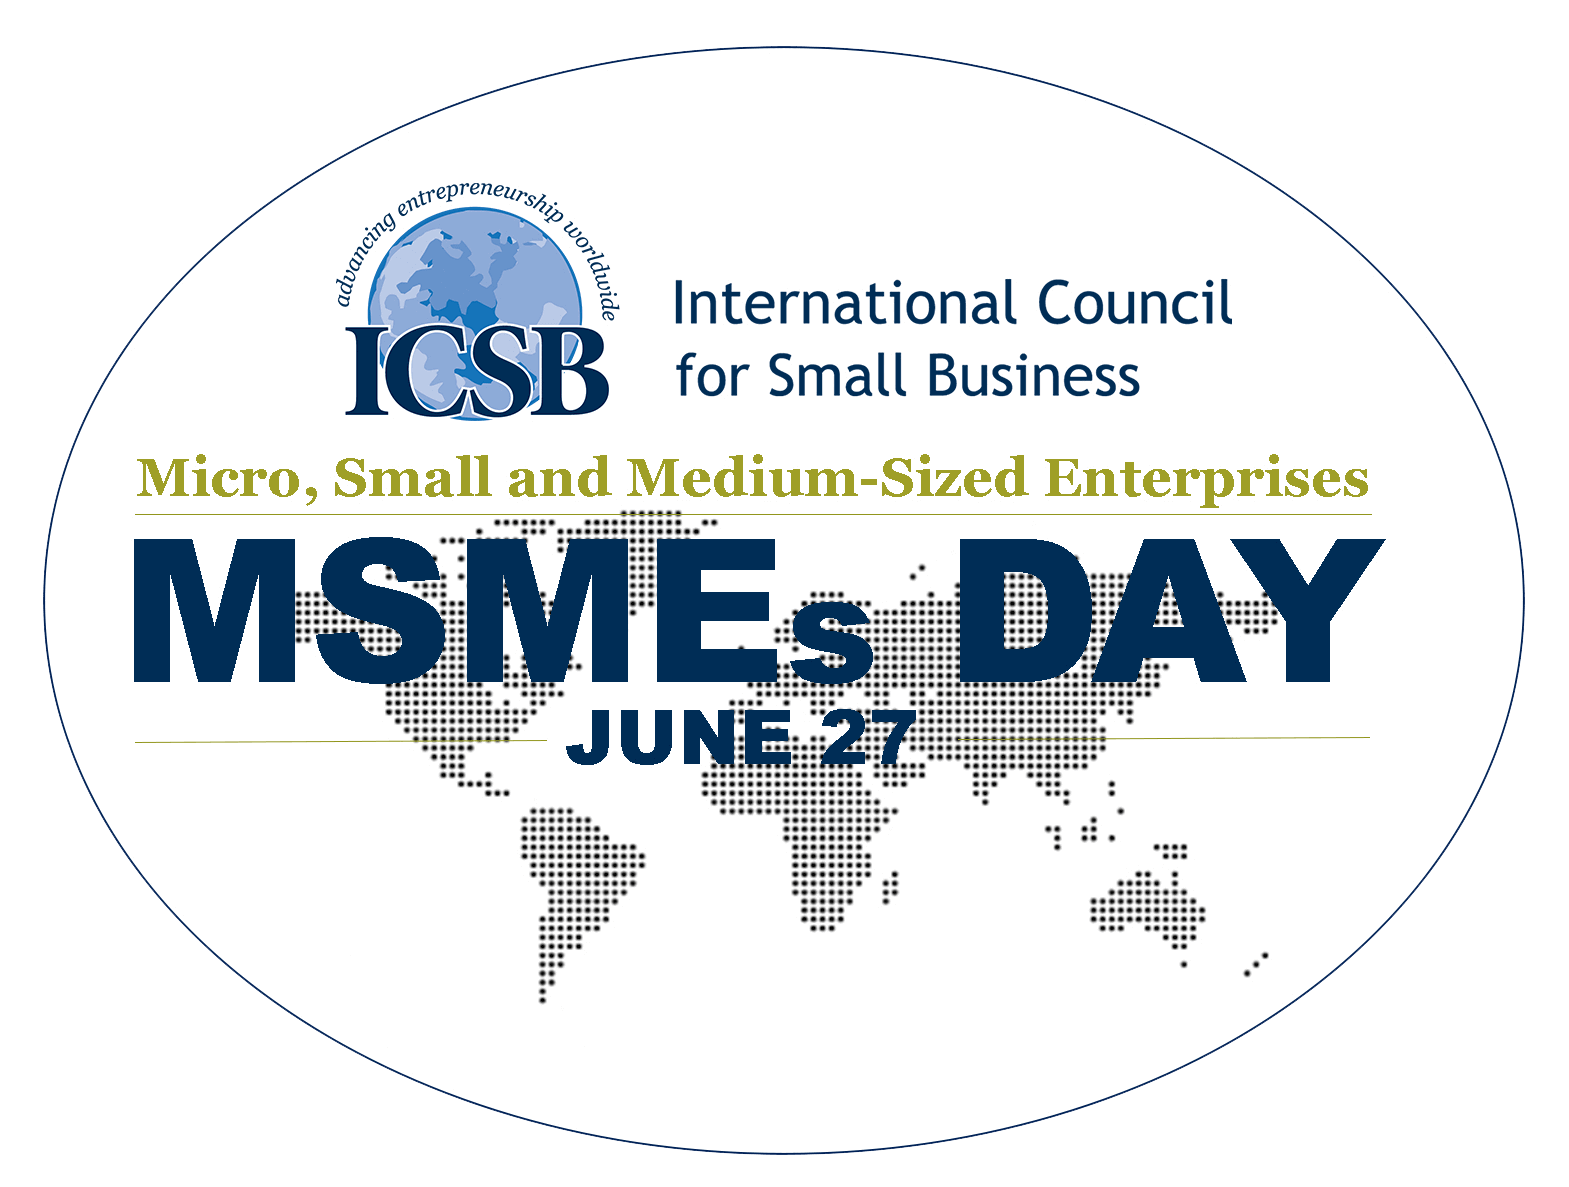 Micro, Small and Medium-sized Enterprises Day